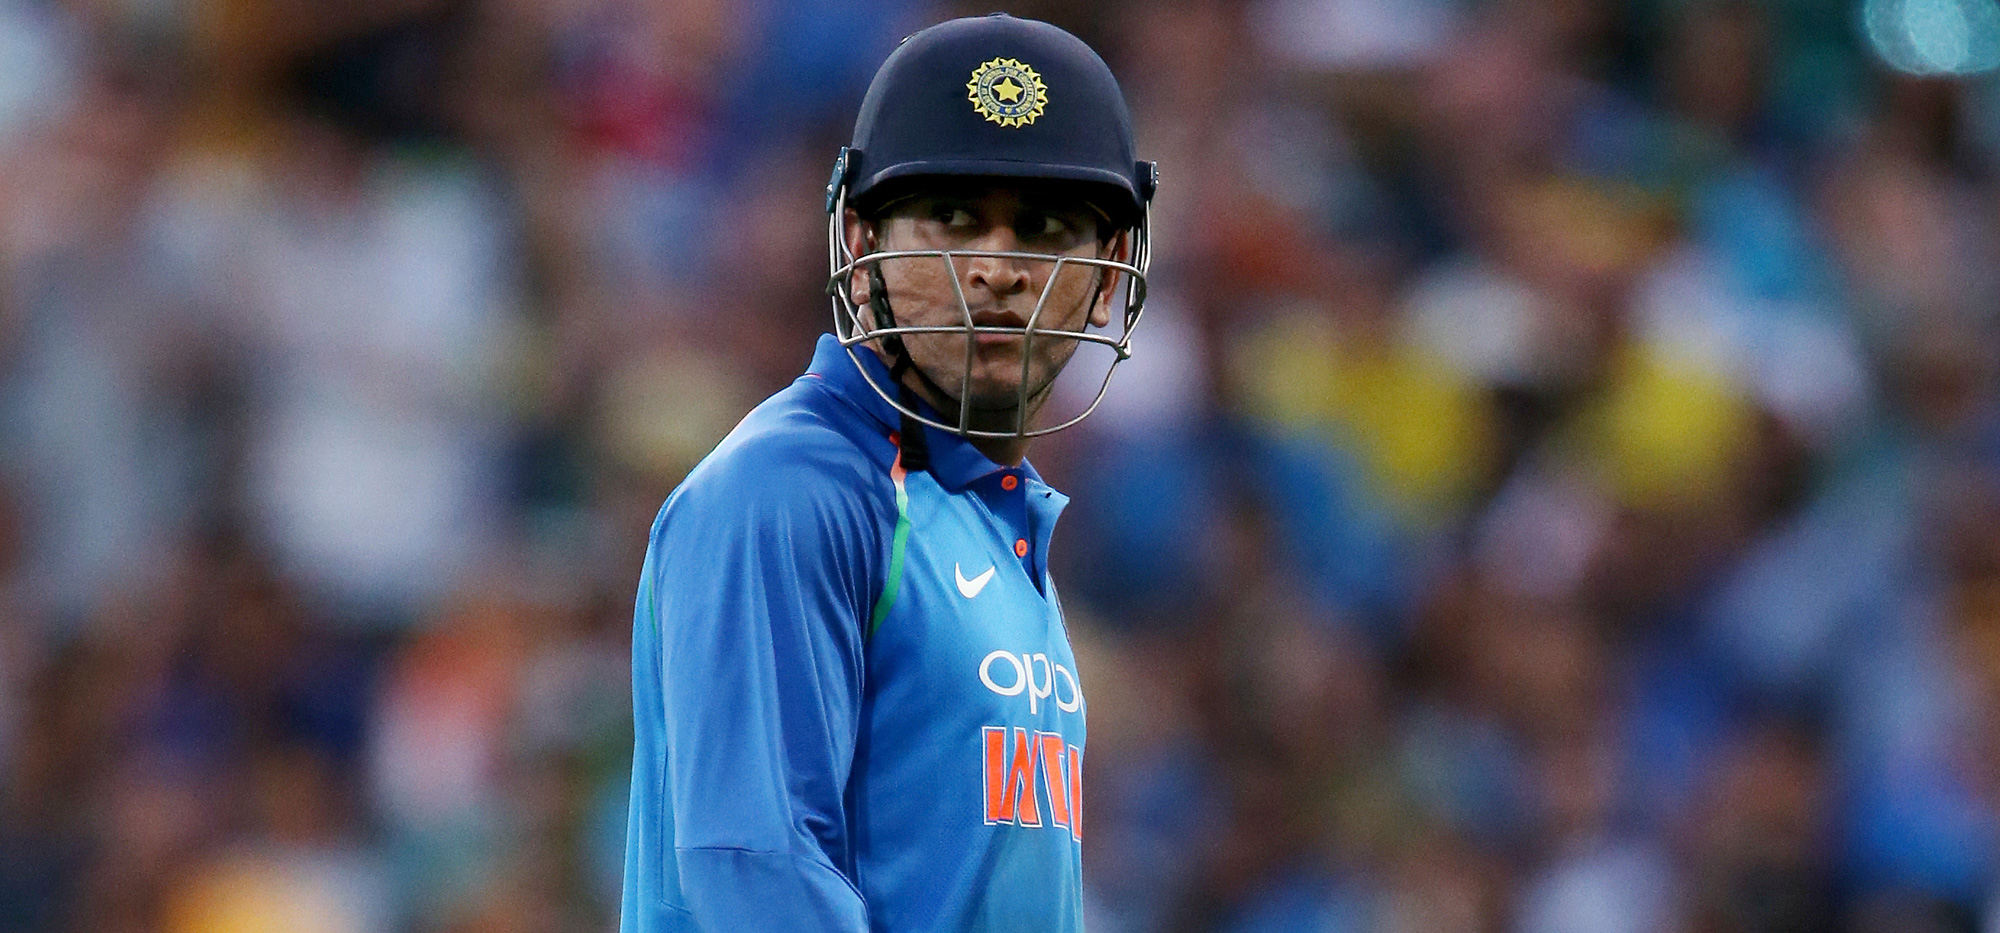 India's M.S. Dhoni walks off after losing his wicket to Australia's Jason Behrendorff during their one day international cricket match in Sydney on Saturday, January 12, 2019.